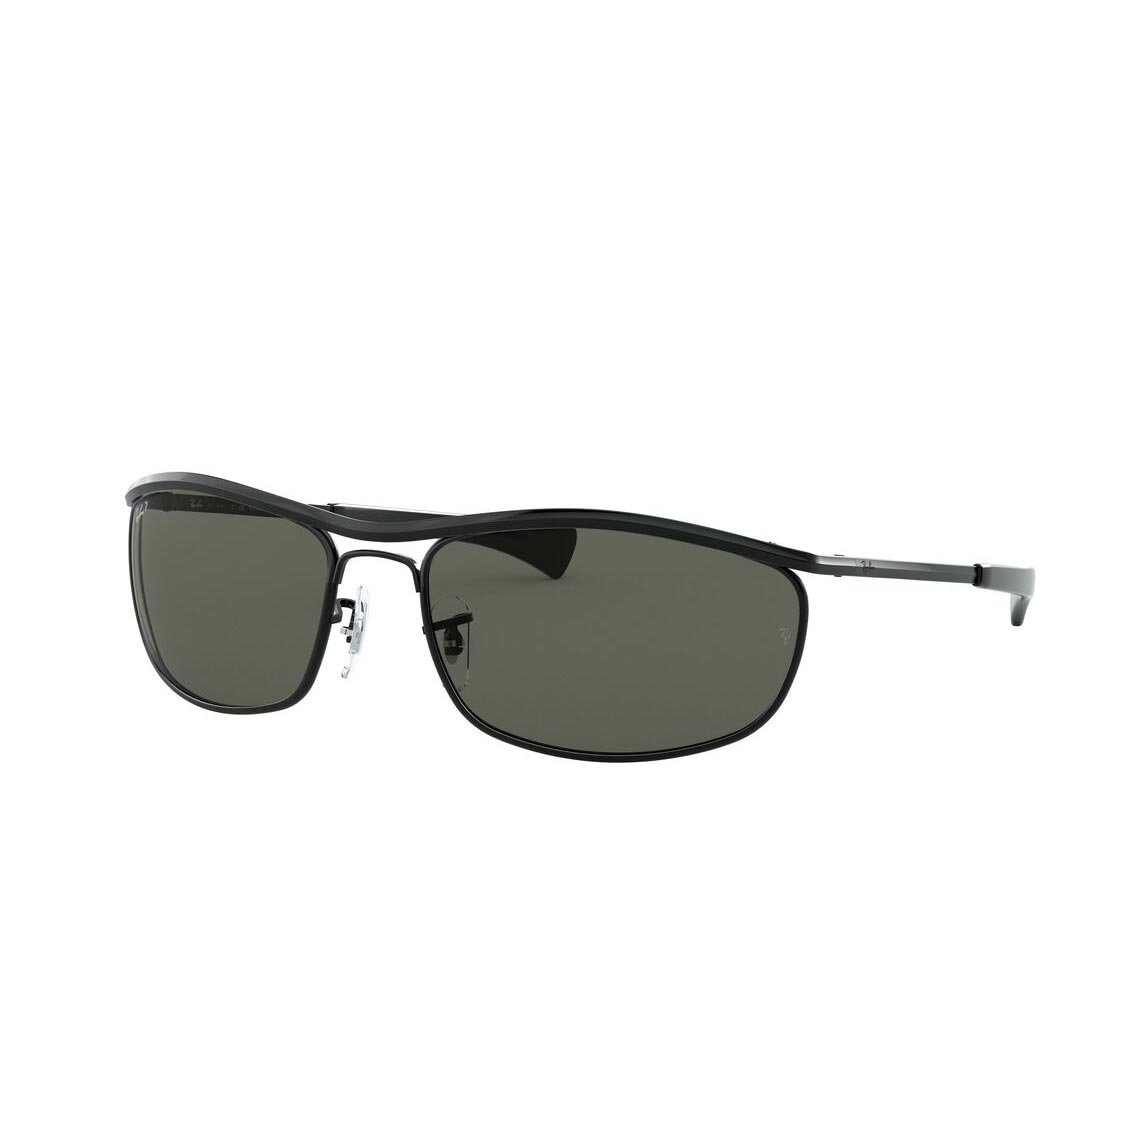 Ray-Ban Olympian I Deluxe RB3119M 002/58 6218